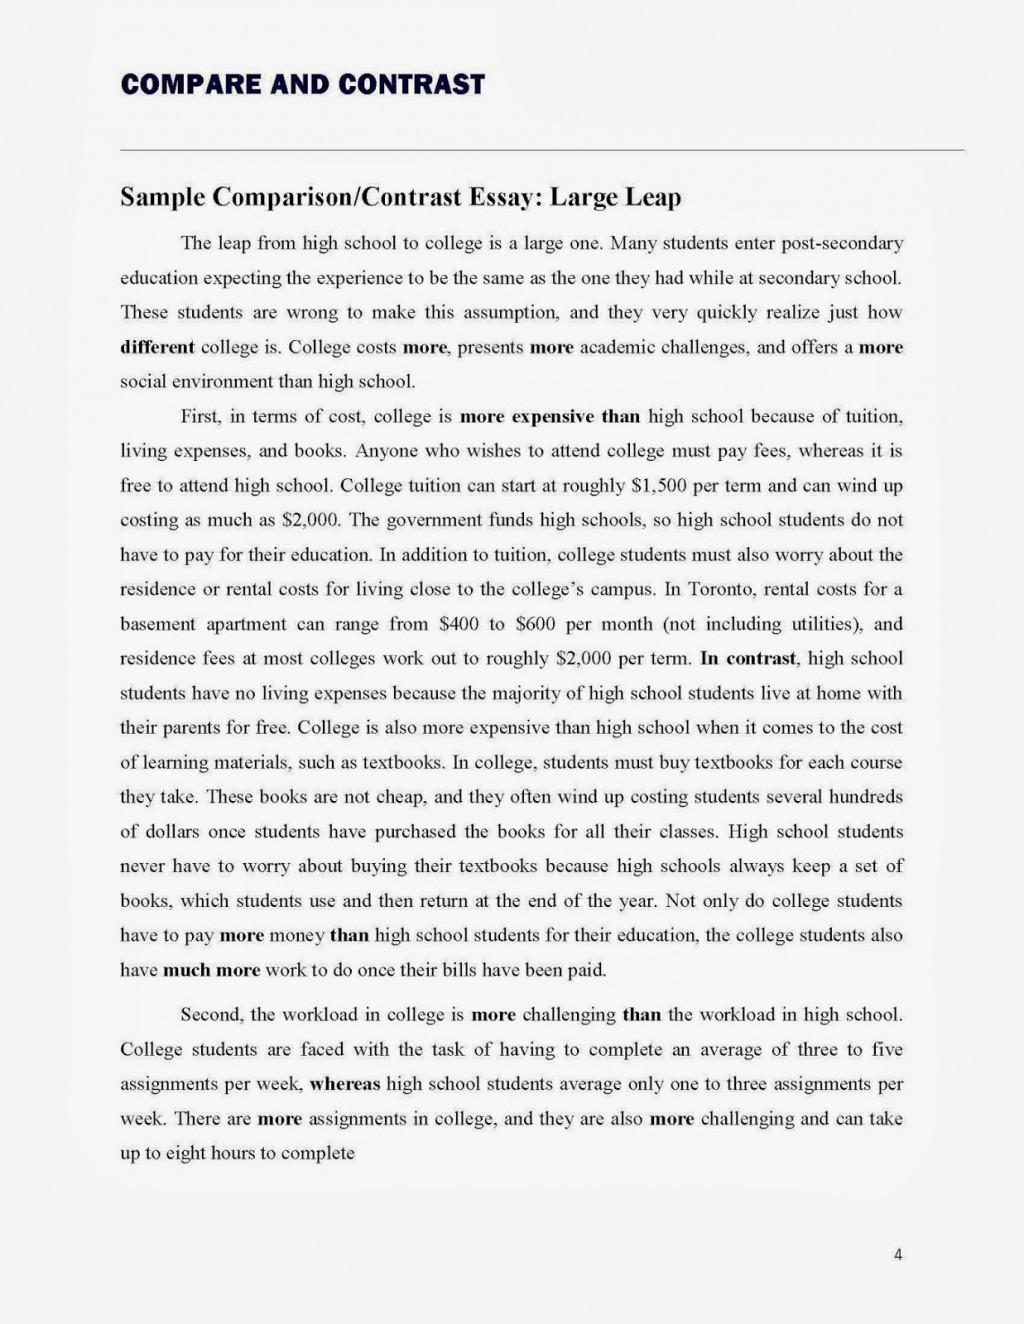 010 Ucf Essay Prompt Example Compare2band2bcontrast2bessay Page 4 Stunning Questions Prompts 2018 Large